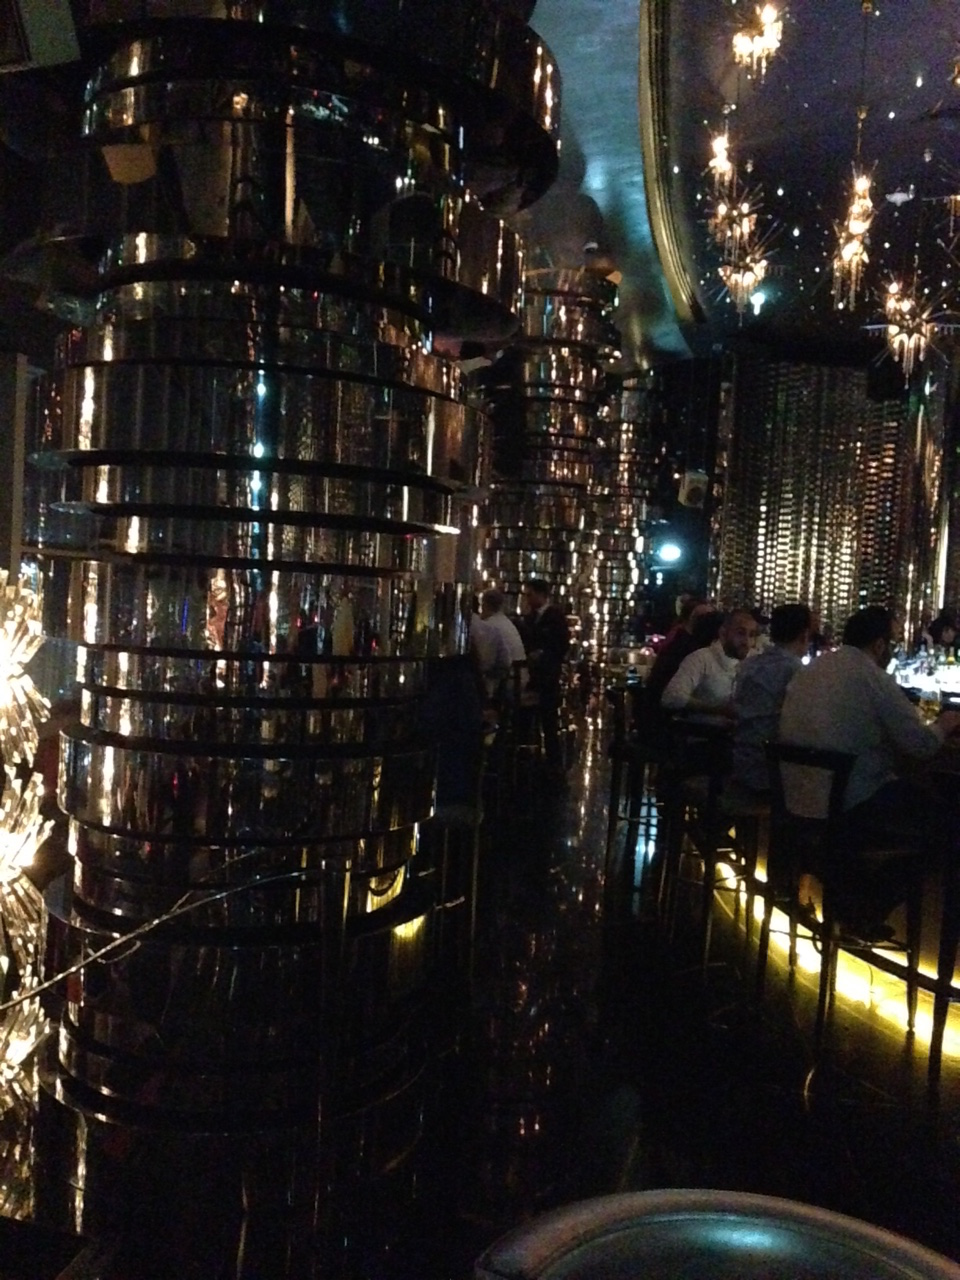 The bar, all mirrors and swag, where we viewed the Burj Khalifa and the fountains.